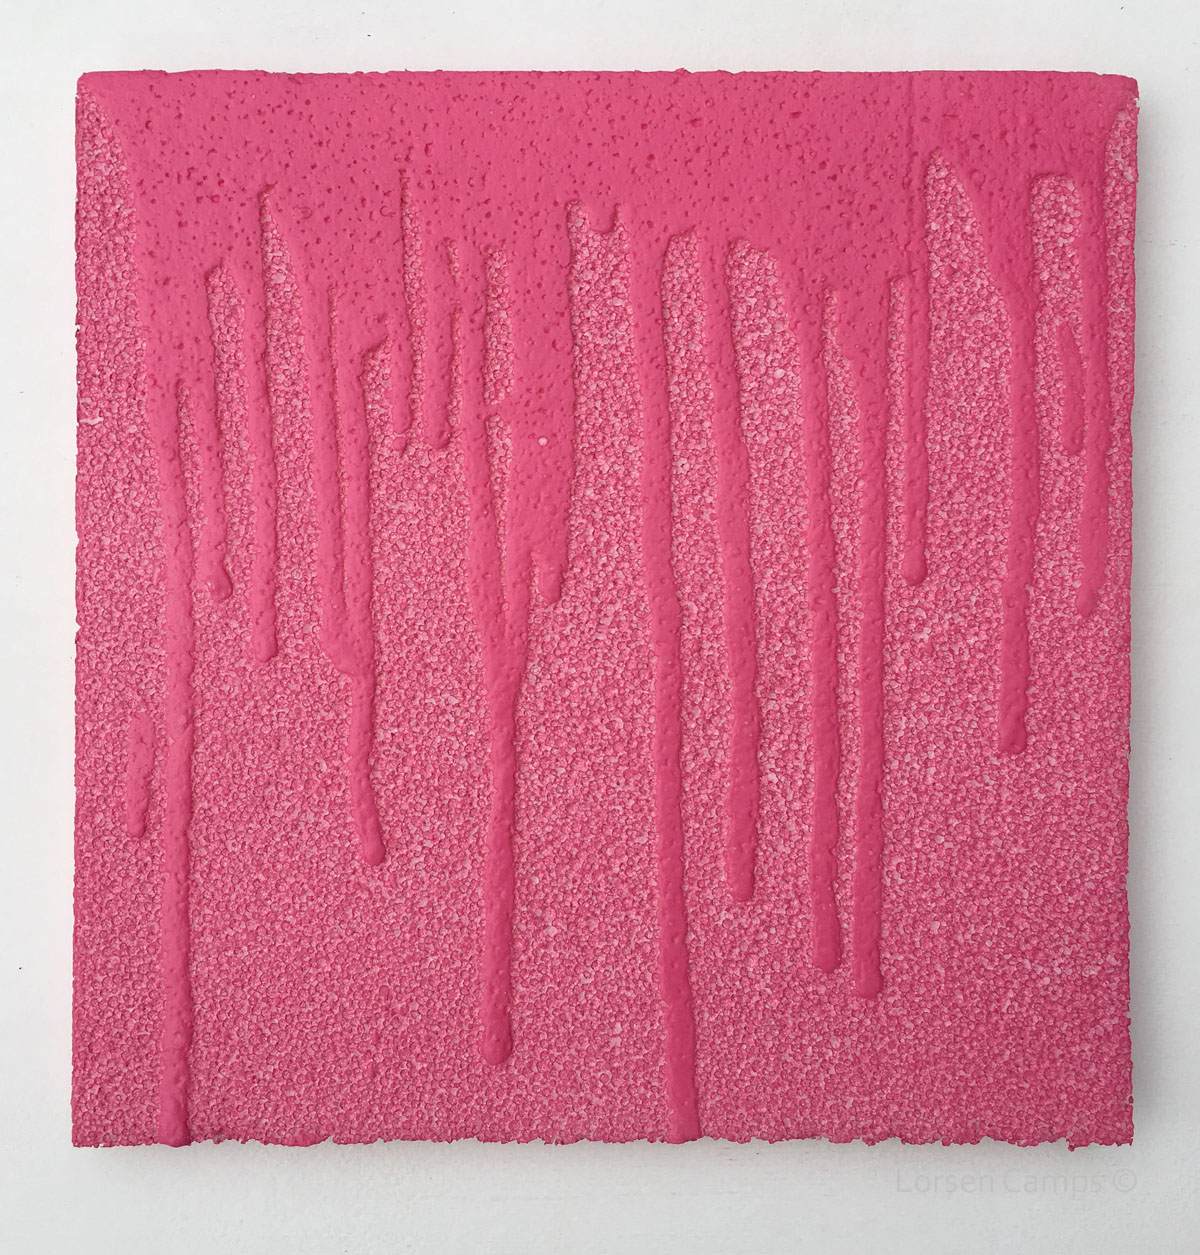 Pink Drips (2019)